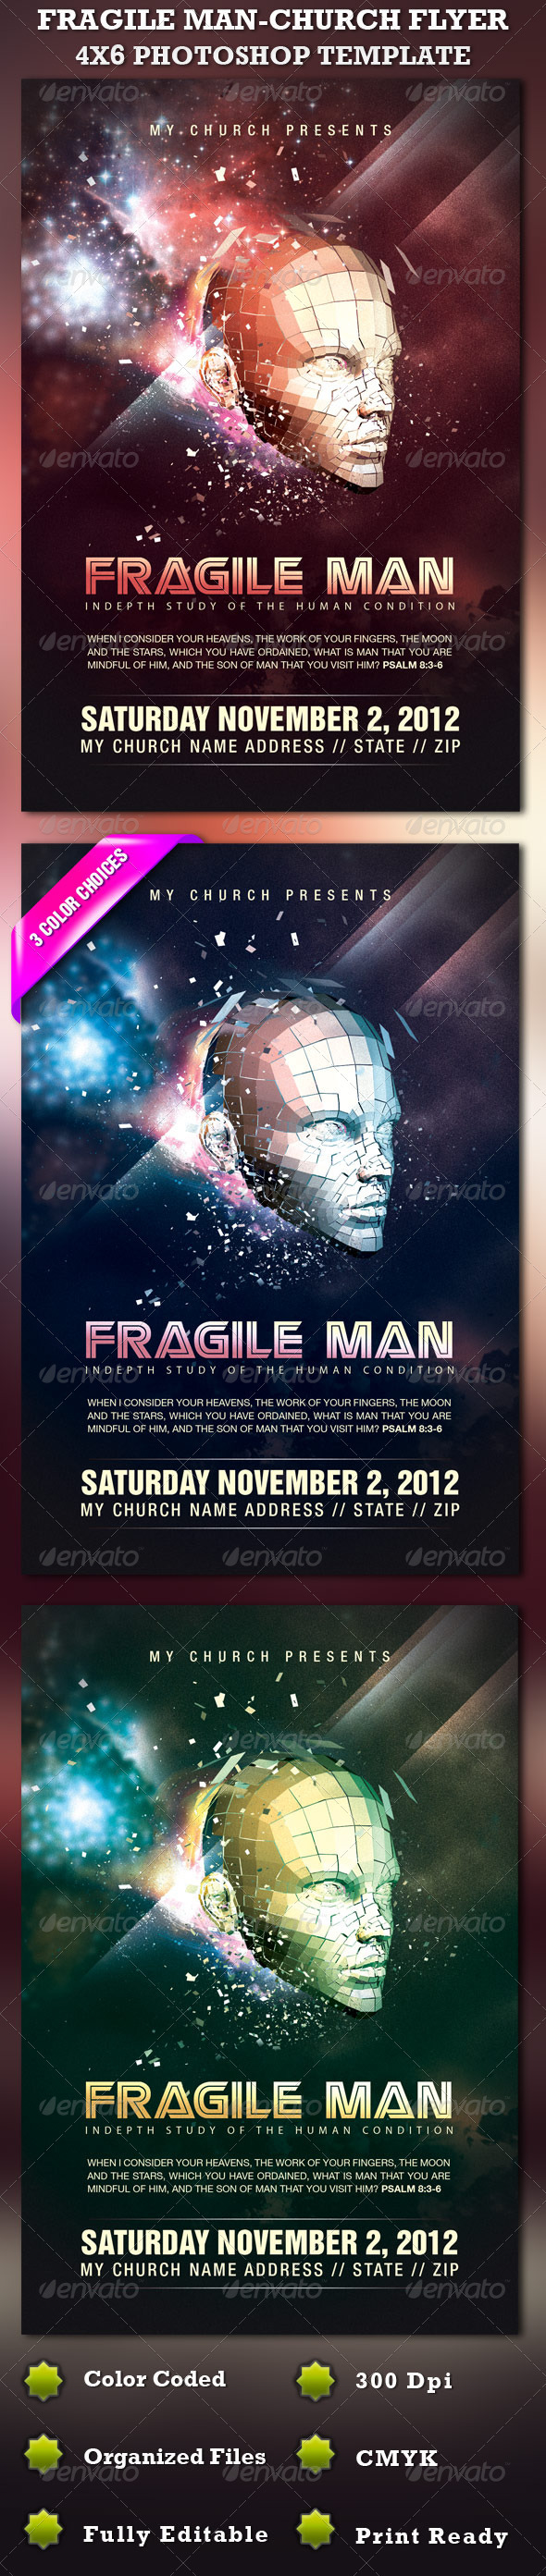 GraphicRiver Fragile Man-Church Flyer Template 644635